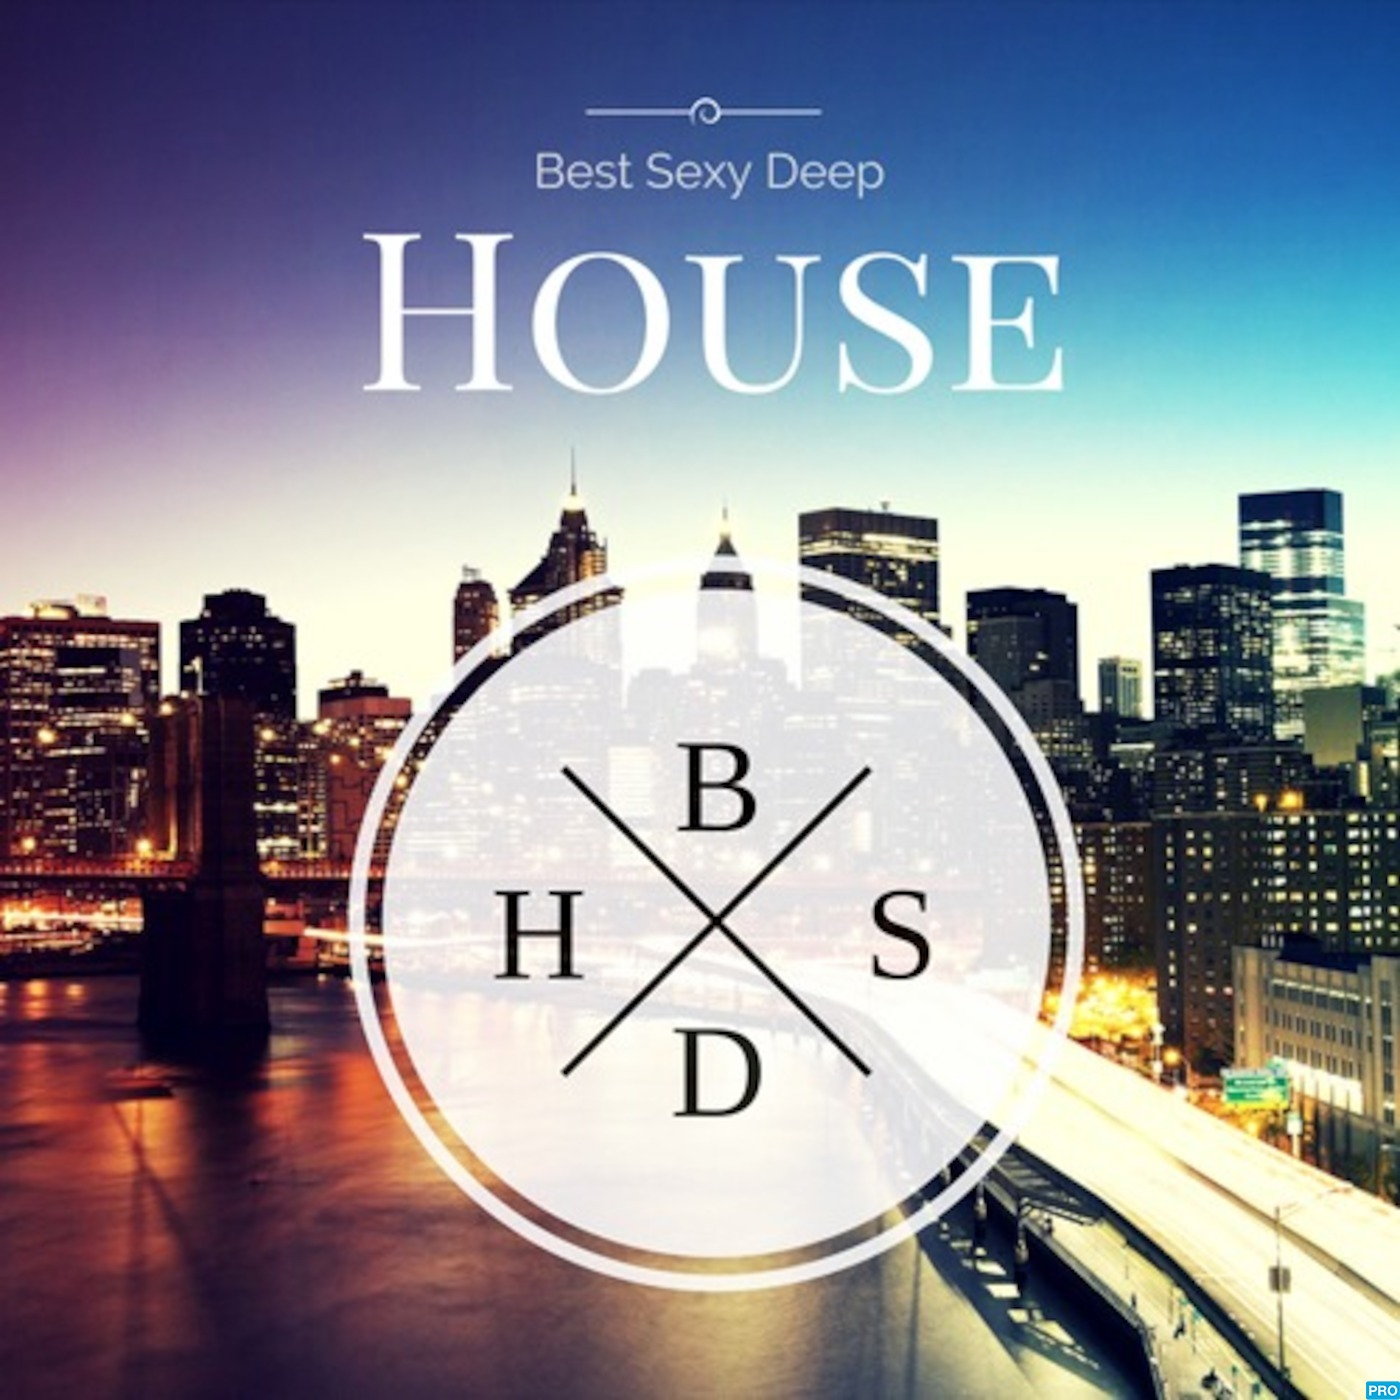 ★ Best Sexy Deep House ★ Deep House and House Podcasts ★